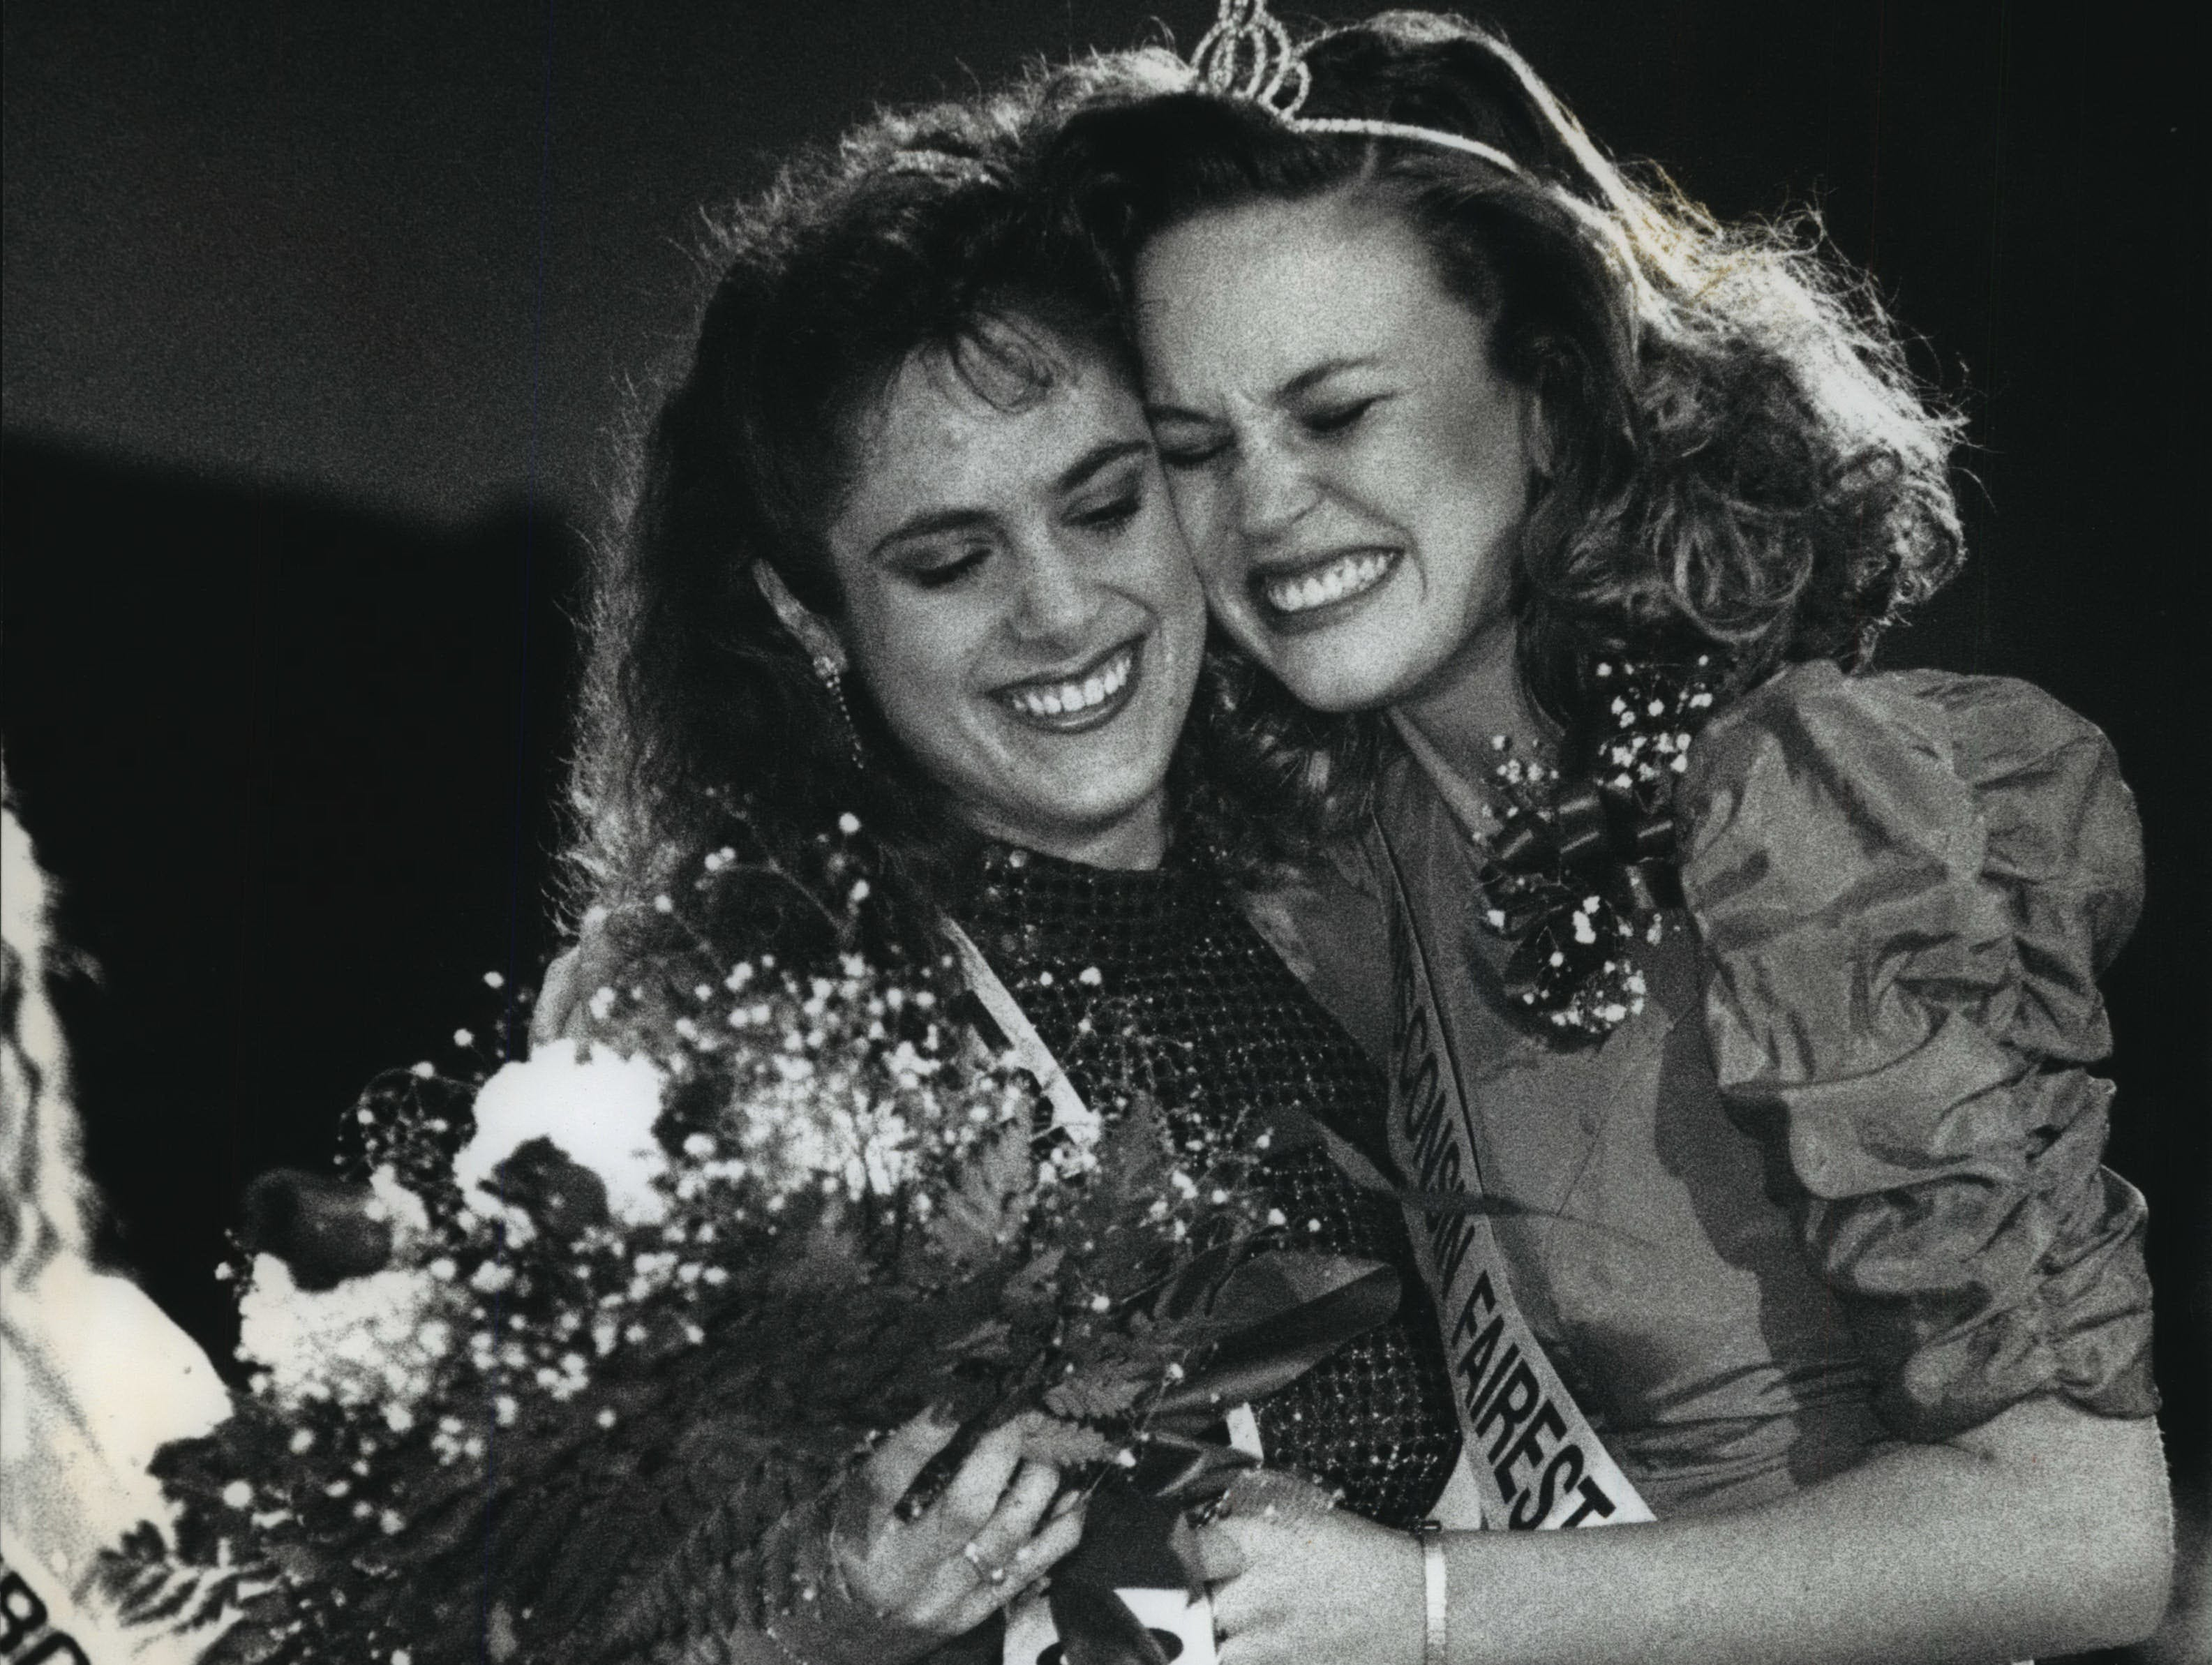 Sue Adams (left), 21, gets a congratulatory hug from Michelle Beilke, 1992 Fairest of the Fairs, after Adams was announces as the 1993 Wisconsin Fairest of the Fairs Wednesday at the Wisconsin Association of Fairs convention at the Hyatt Regency Milwaukee. Both represented the Fond du Lac County Fair.